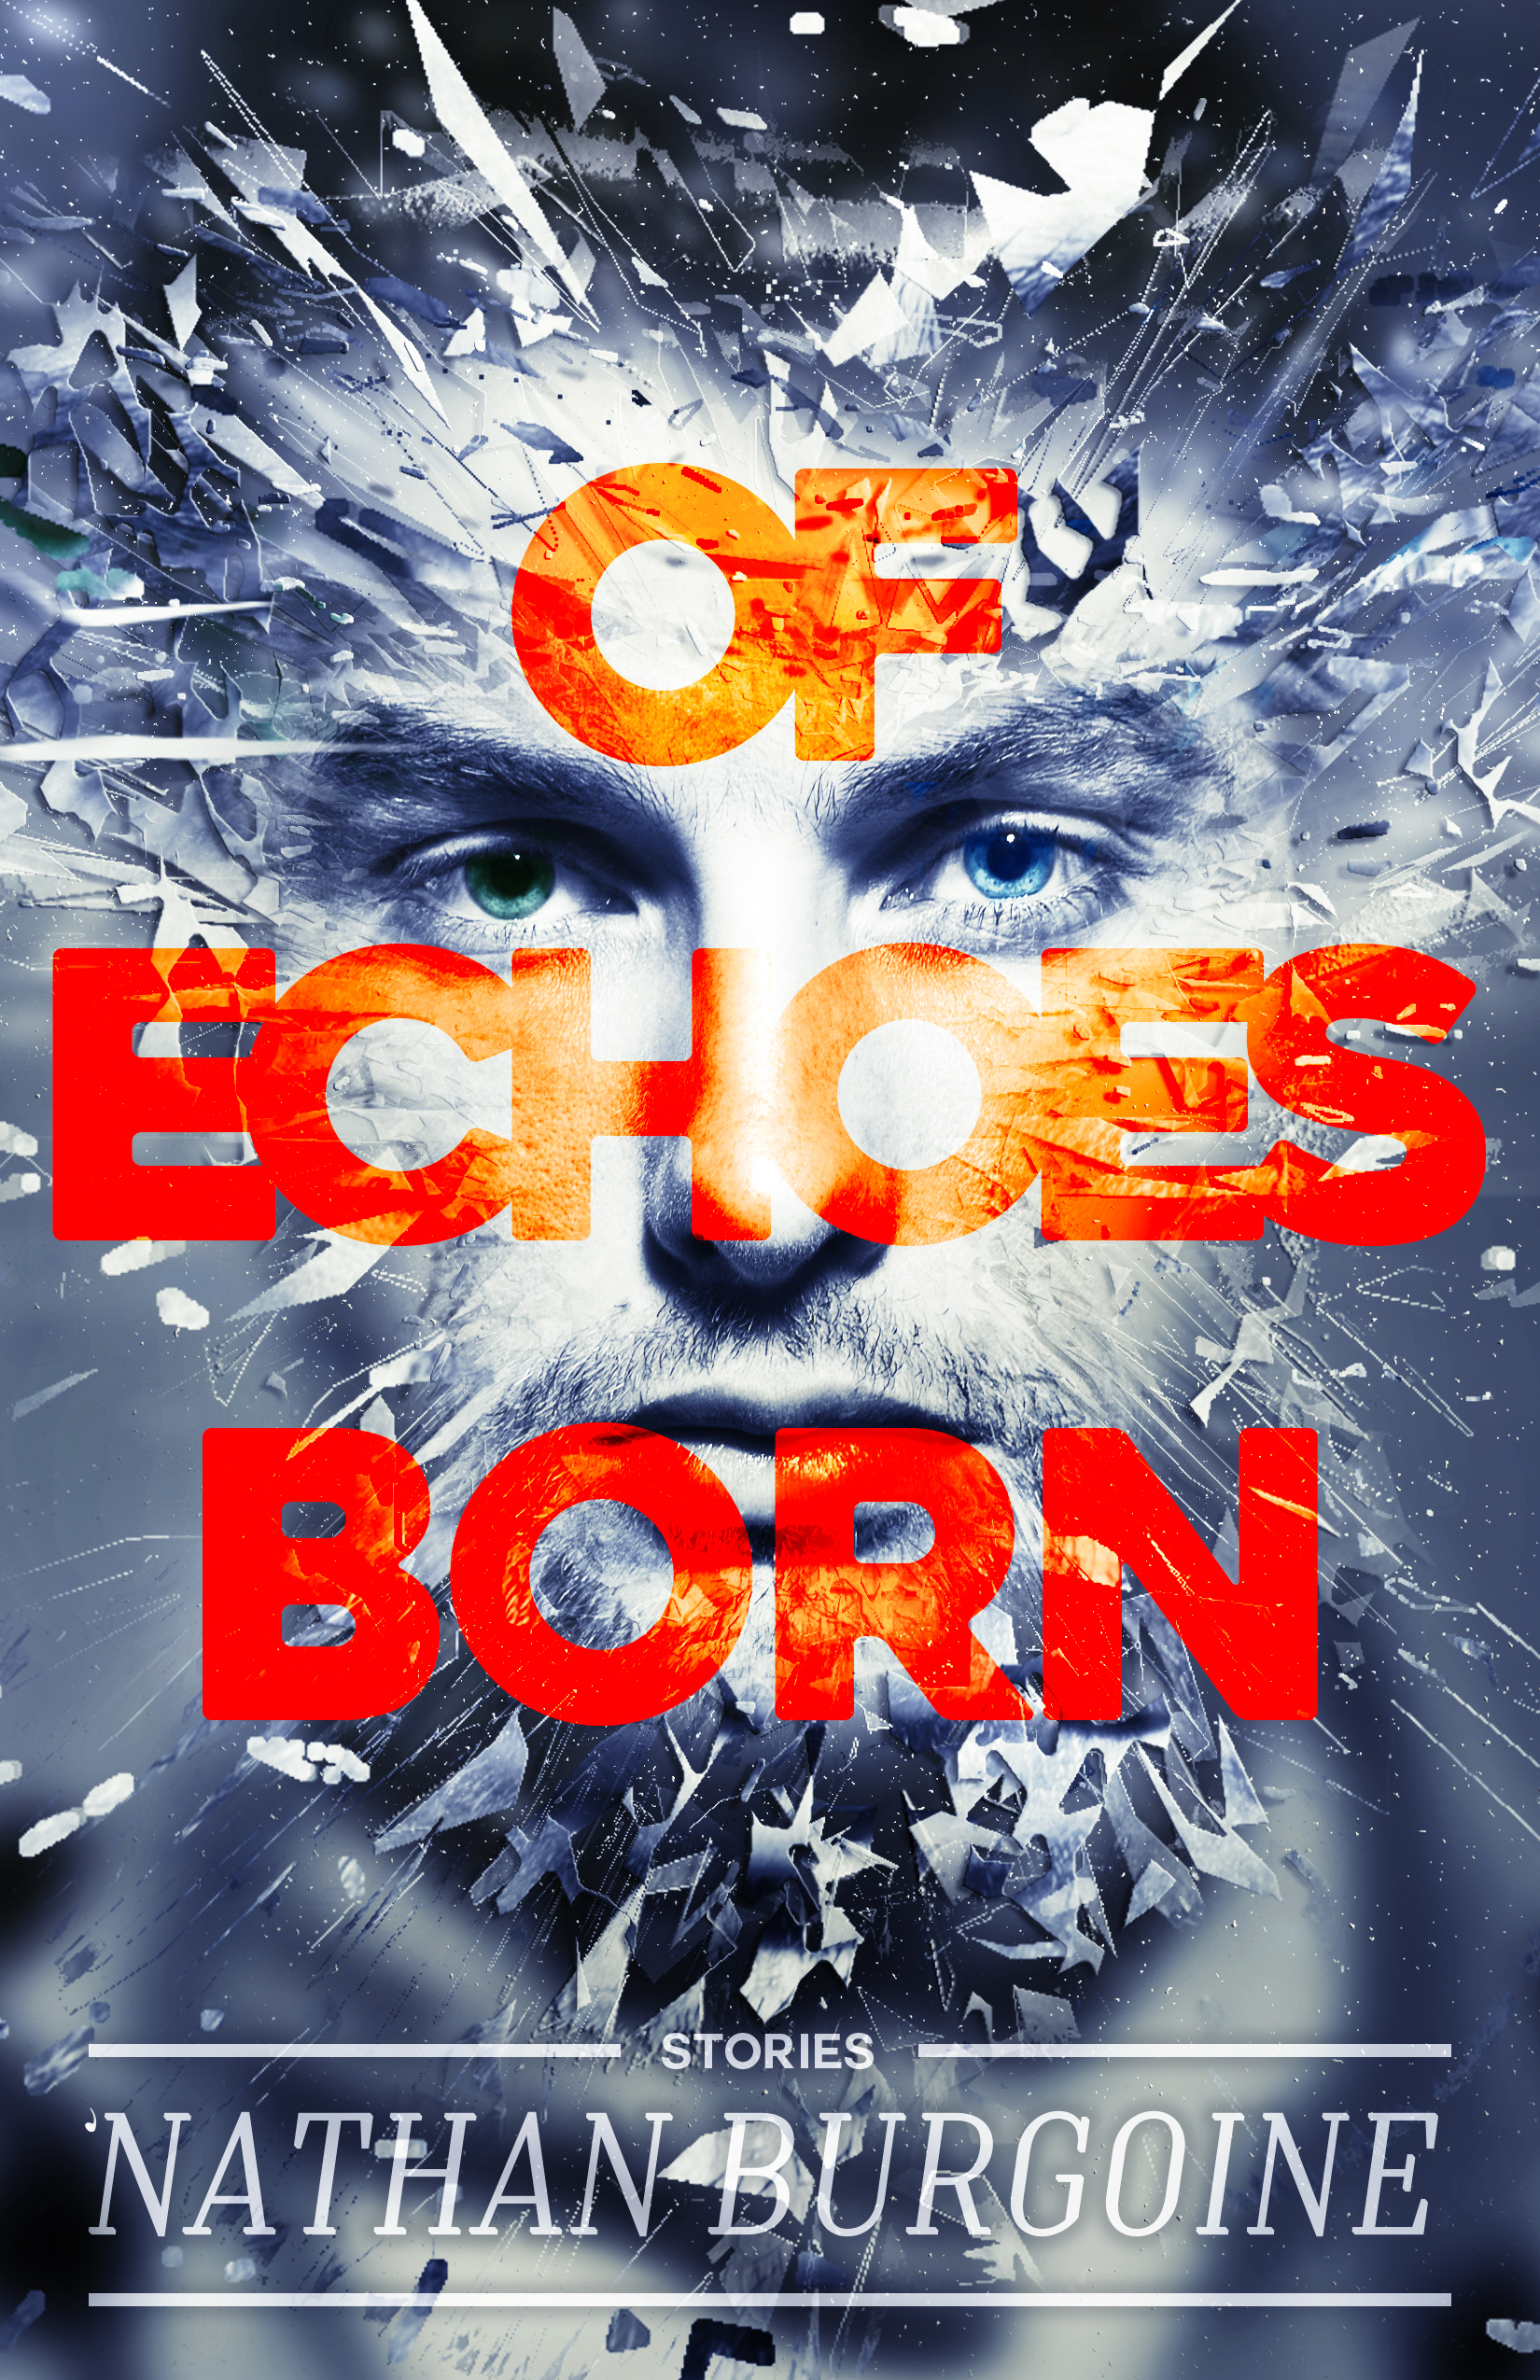 Excerpt: Of Echoes Born by Nathan Burgoine